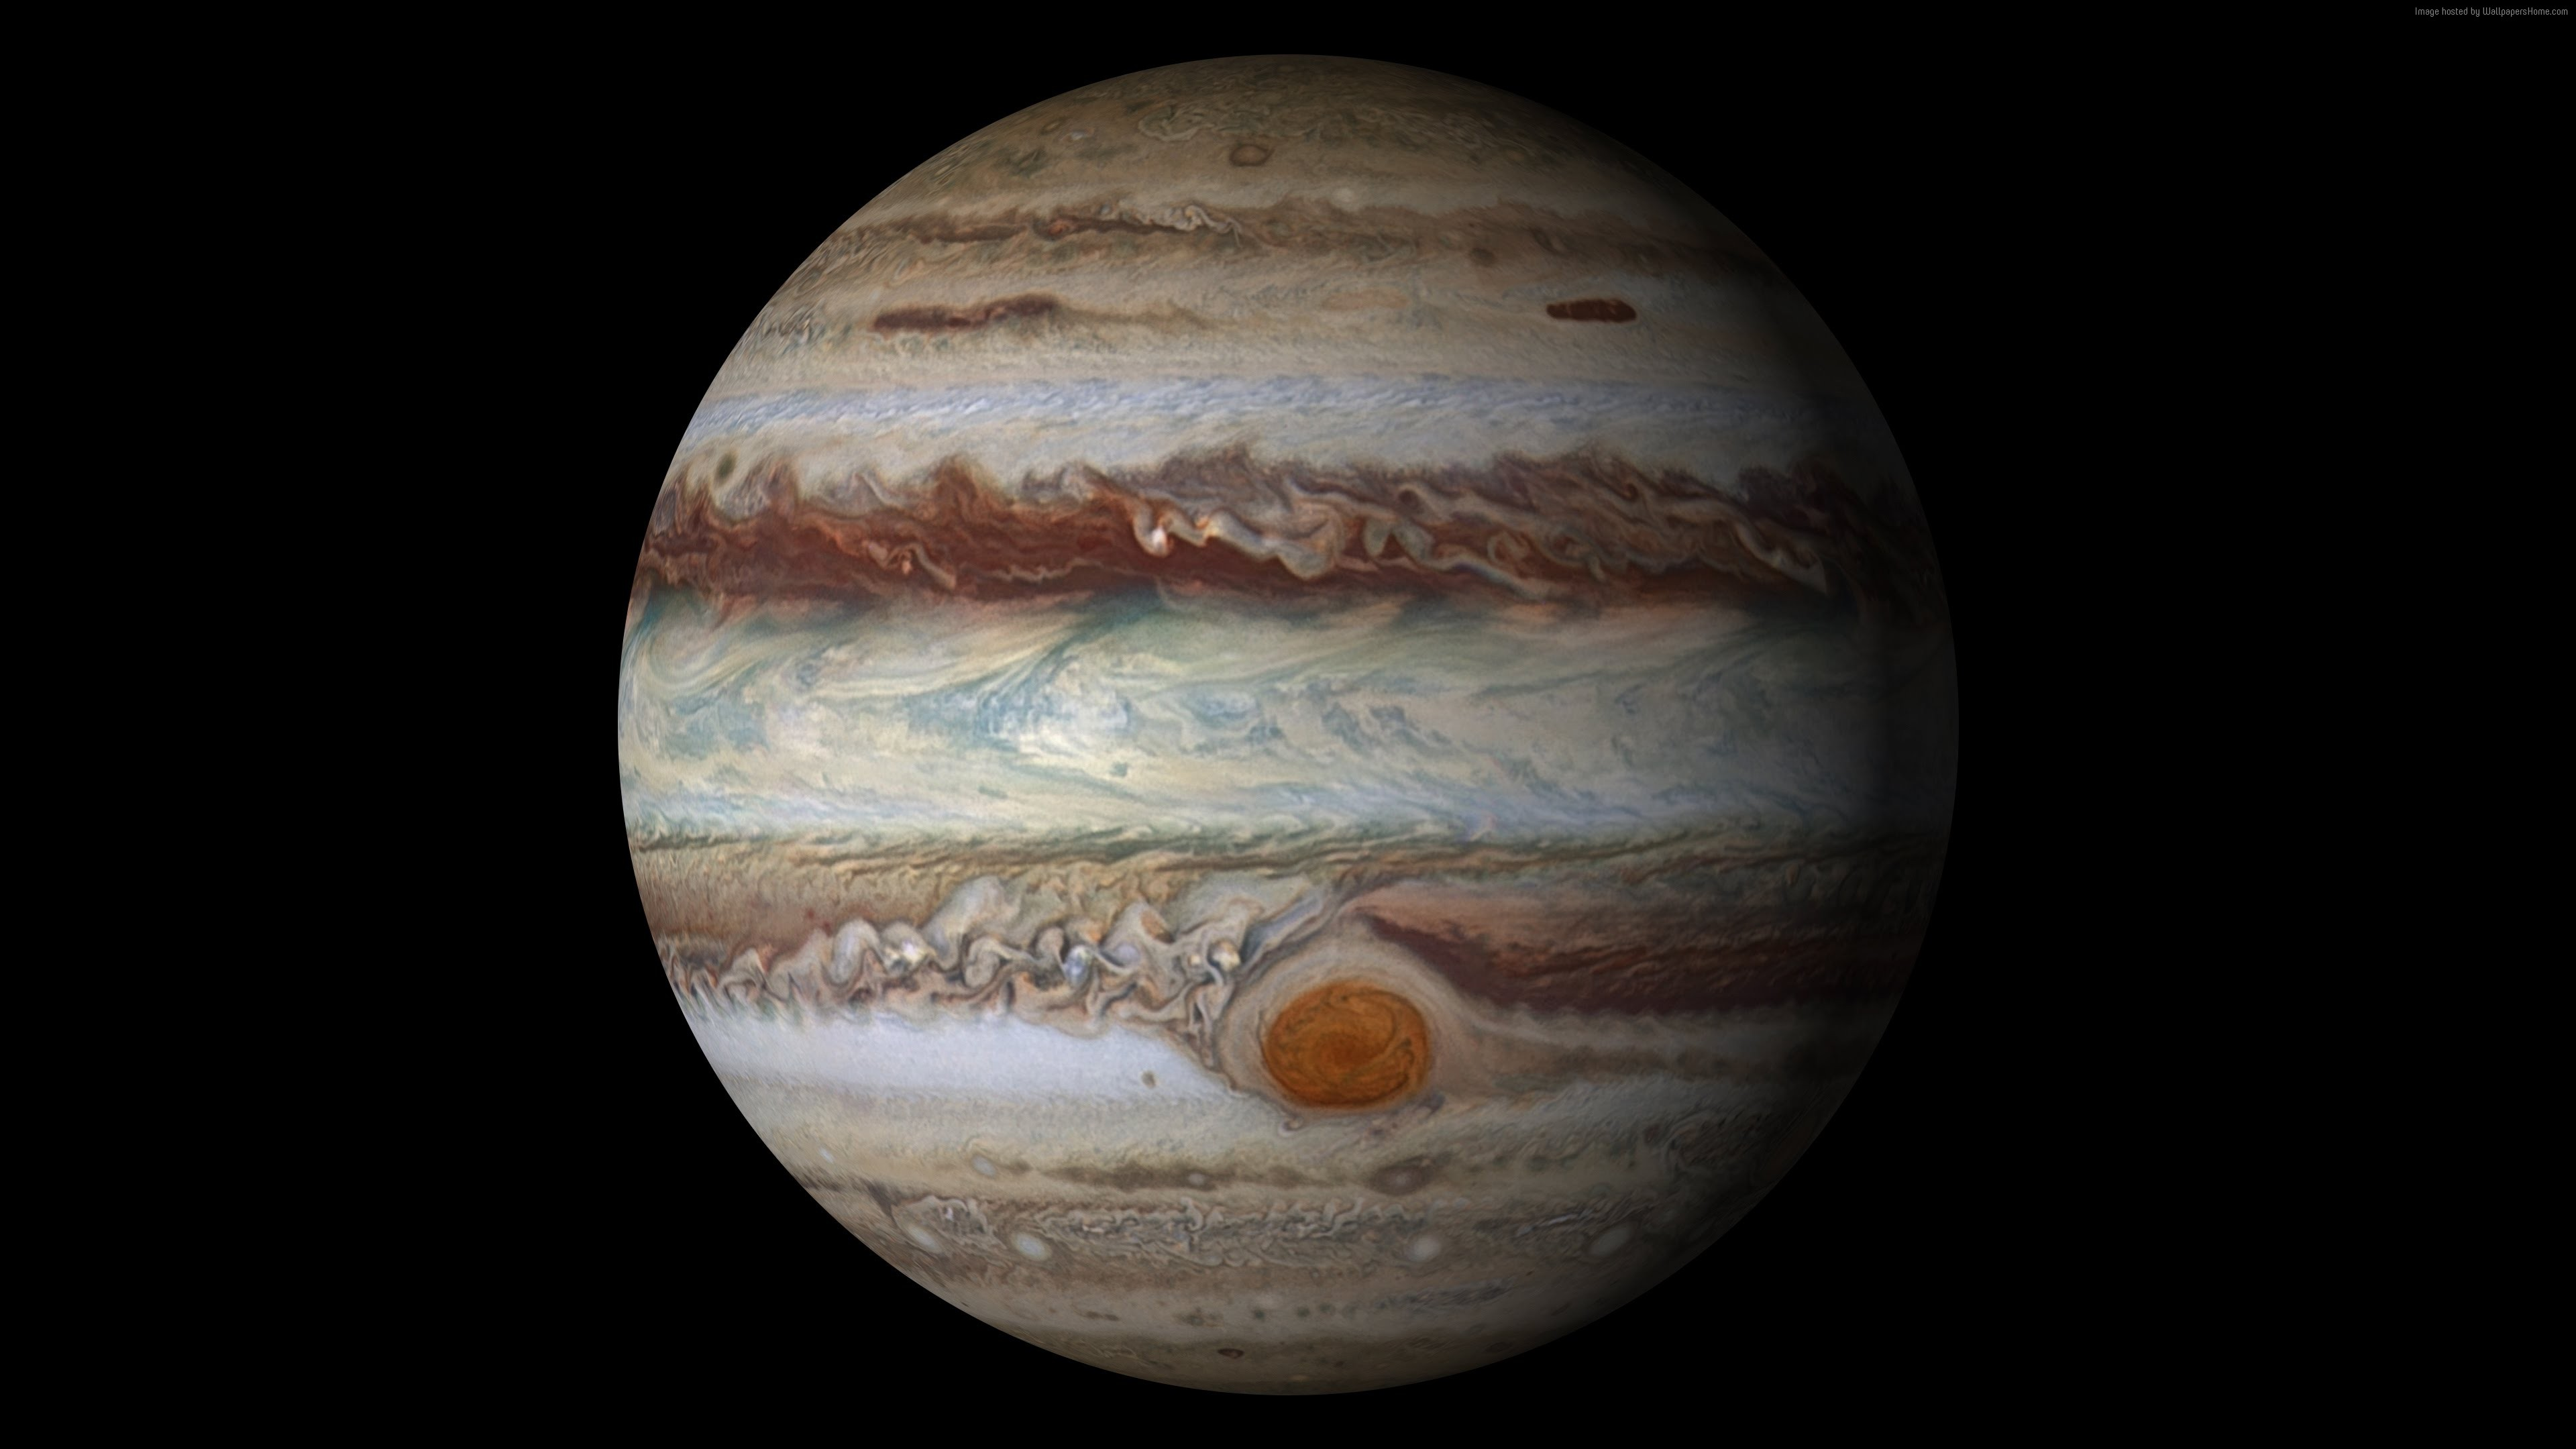 Jupiter Wallpaper 3   3840 X 2160 stmednet 3840x2160